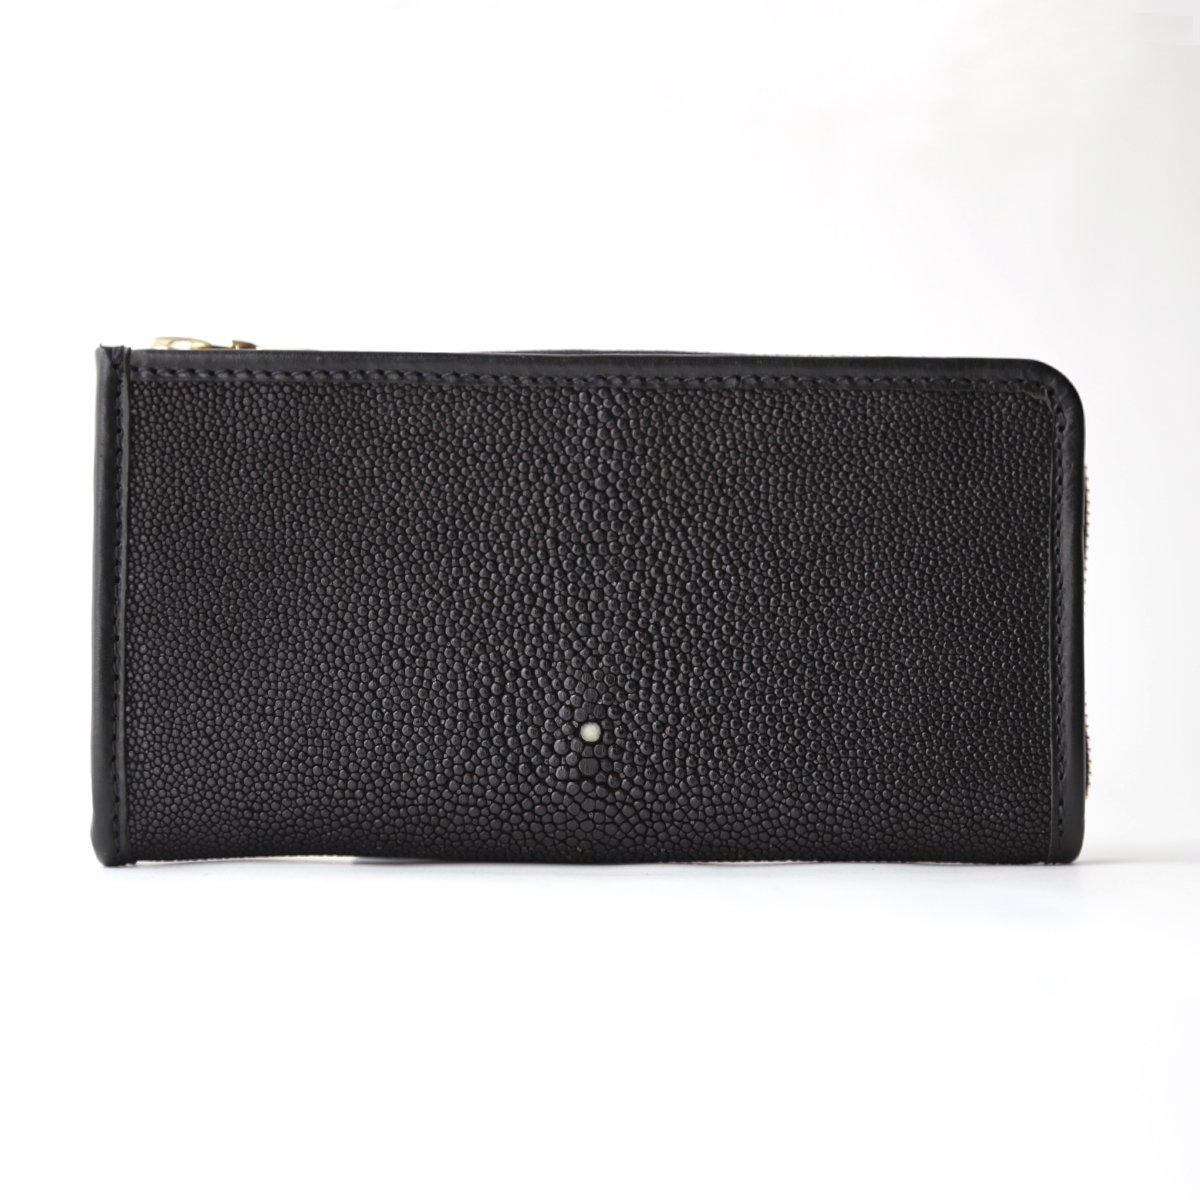 Tochca  Galusha Zip Long Wallet